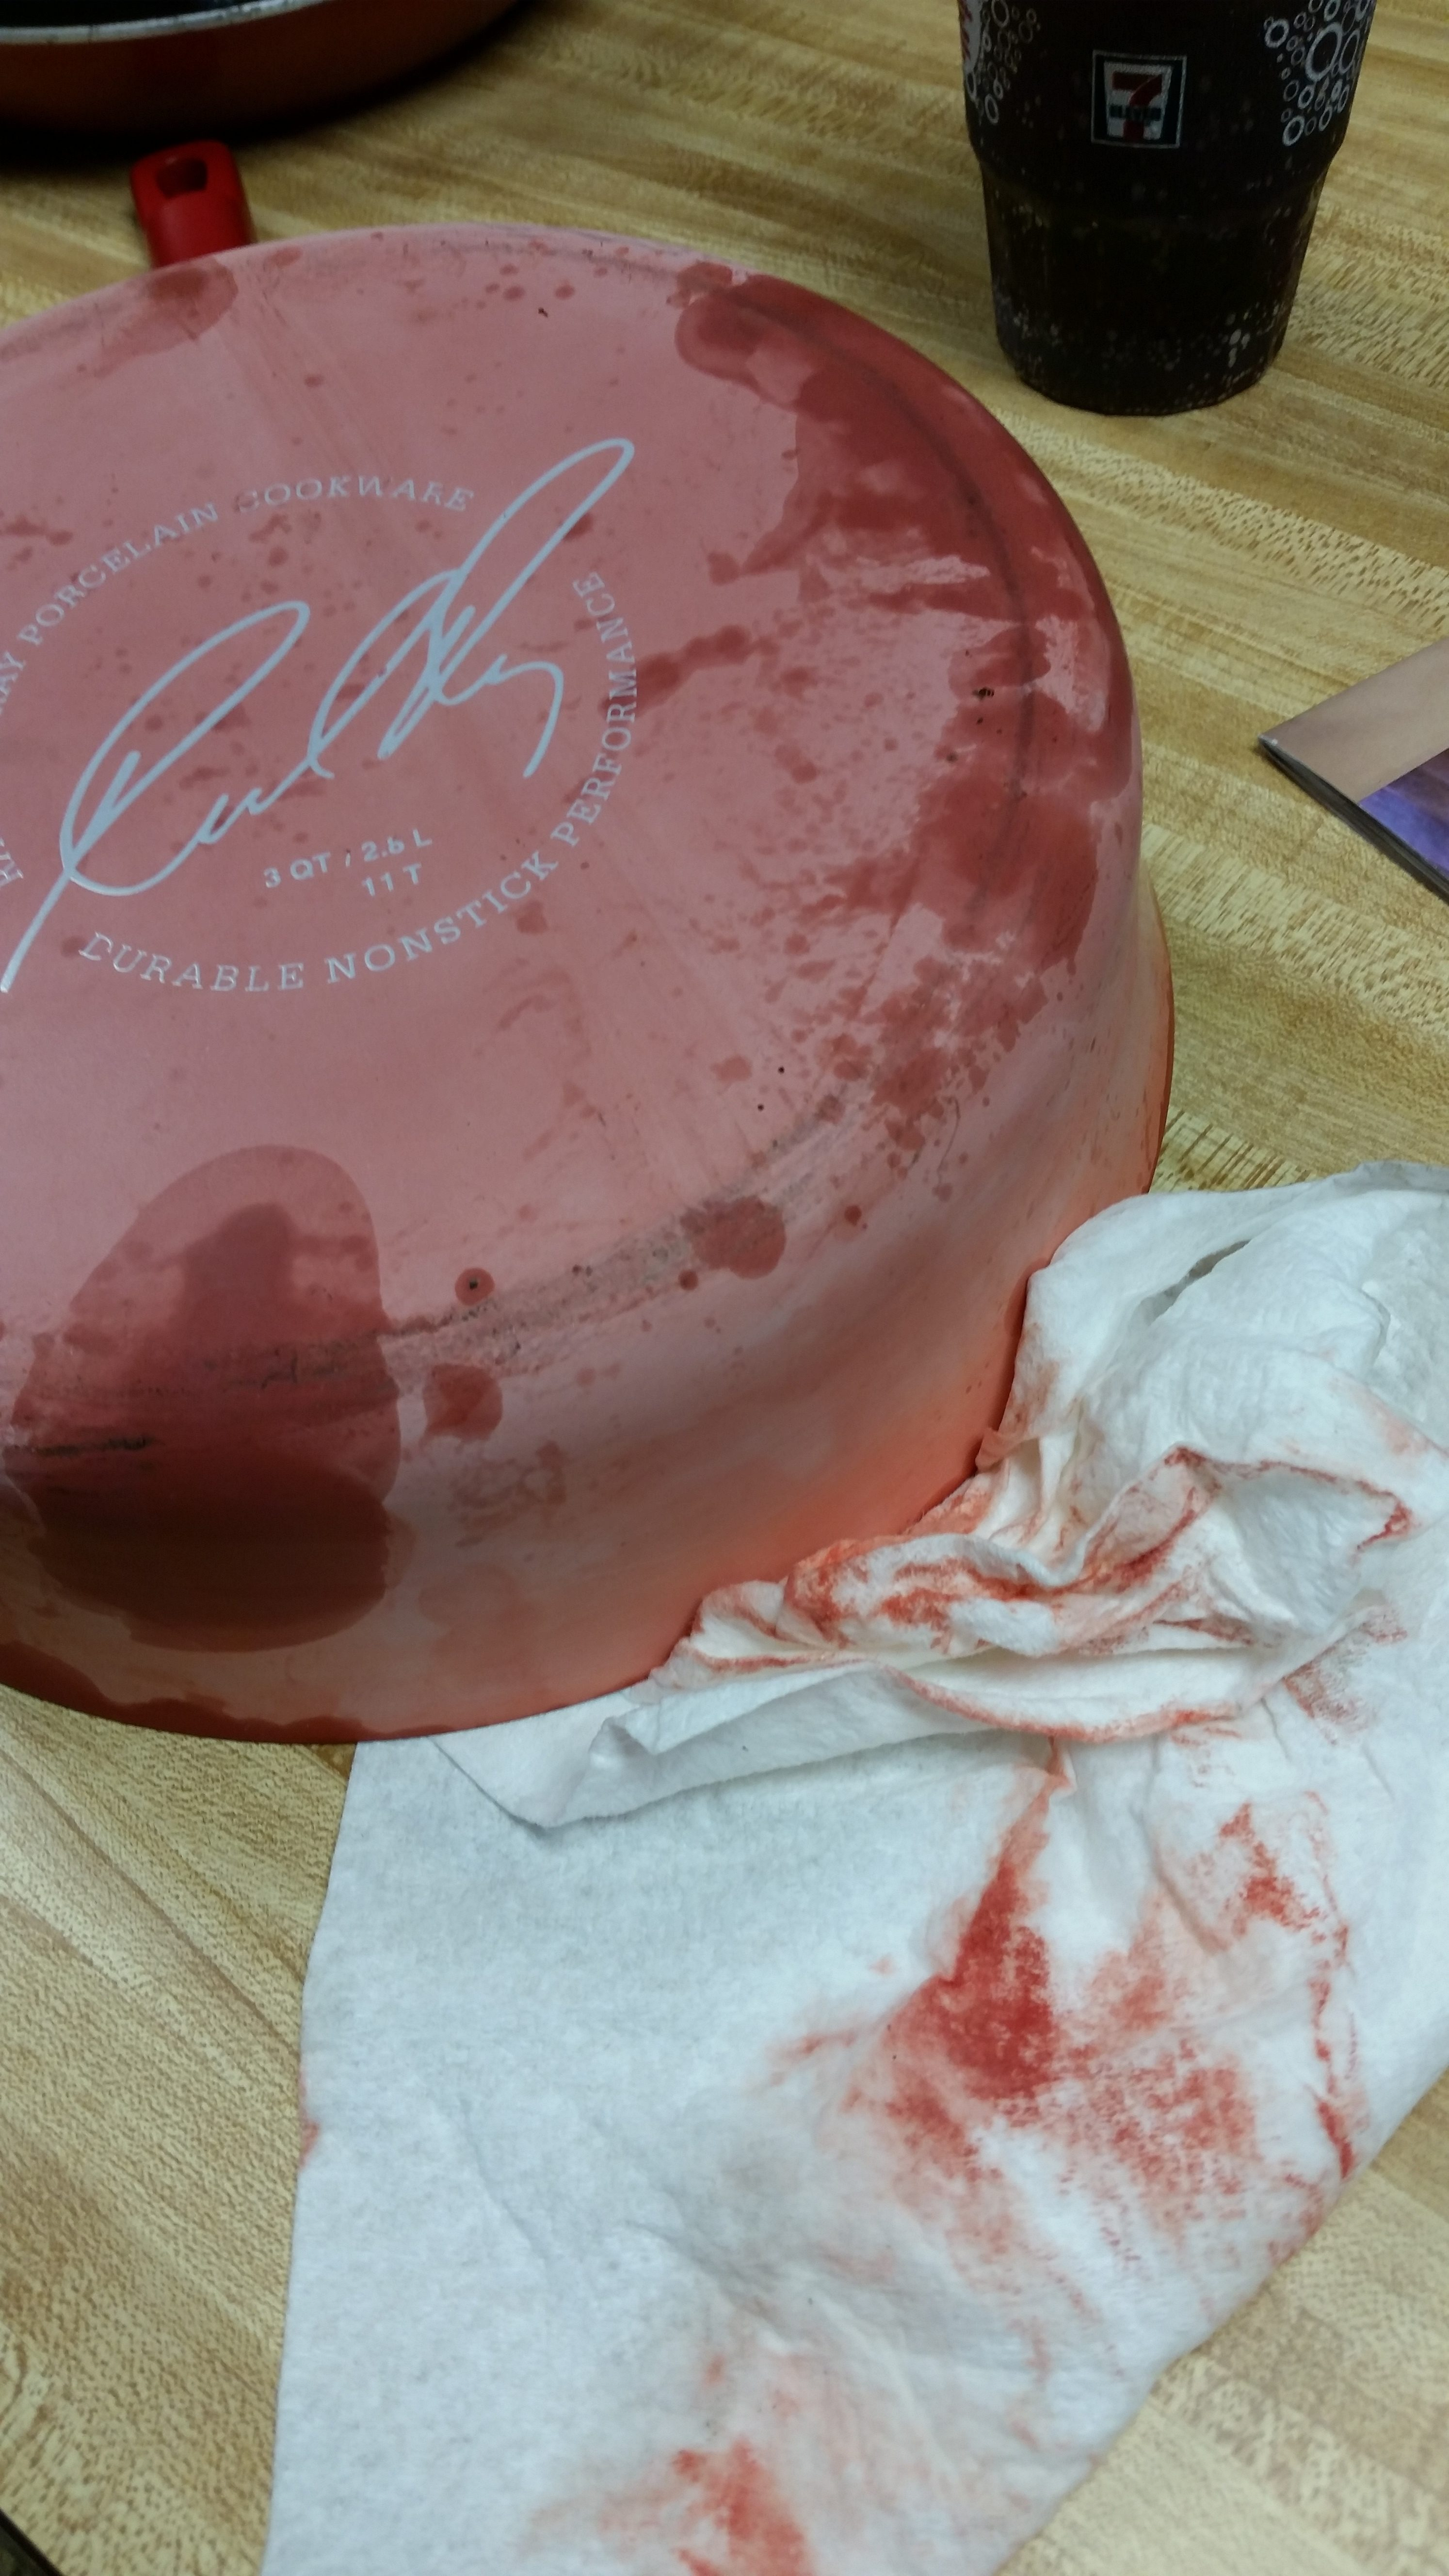 Top 187 Reviews and Complaints about Rachael Ray Cookware | Page 2